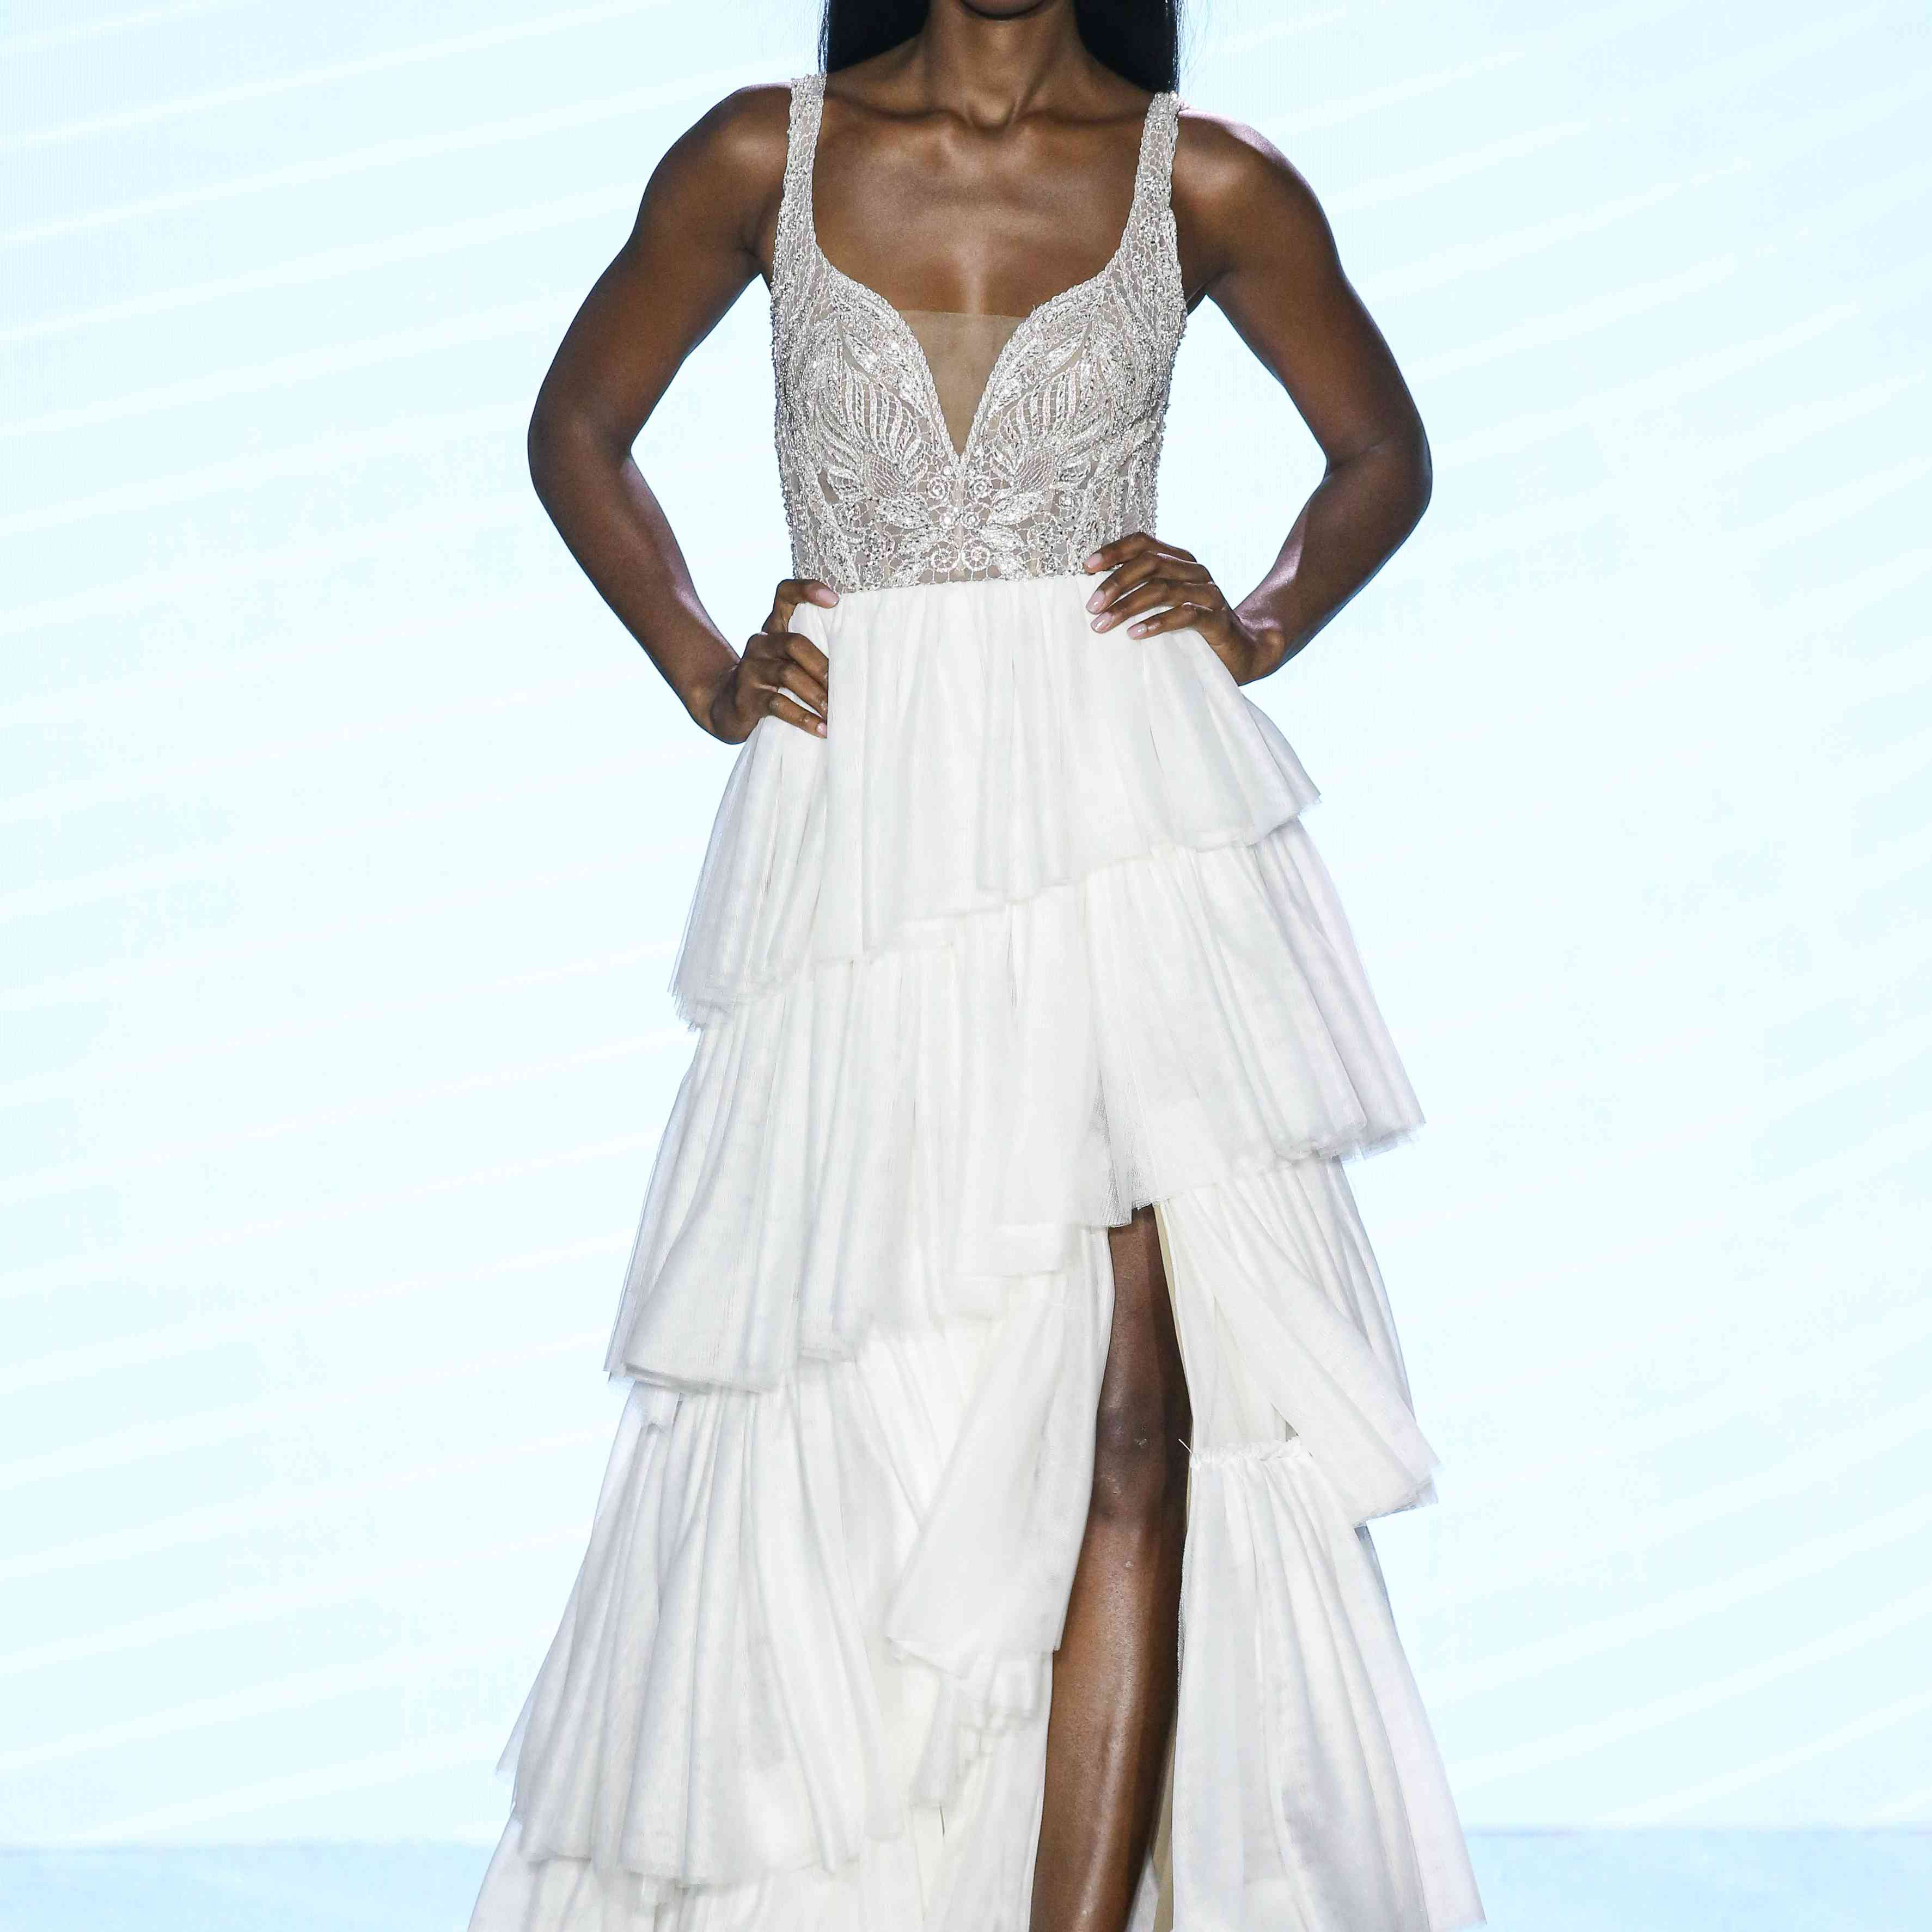 Model in A-line wedding dress with a V-neck jeweled bodice and a tiered tulle skirt with front slit